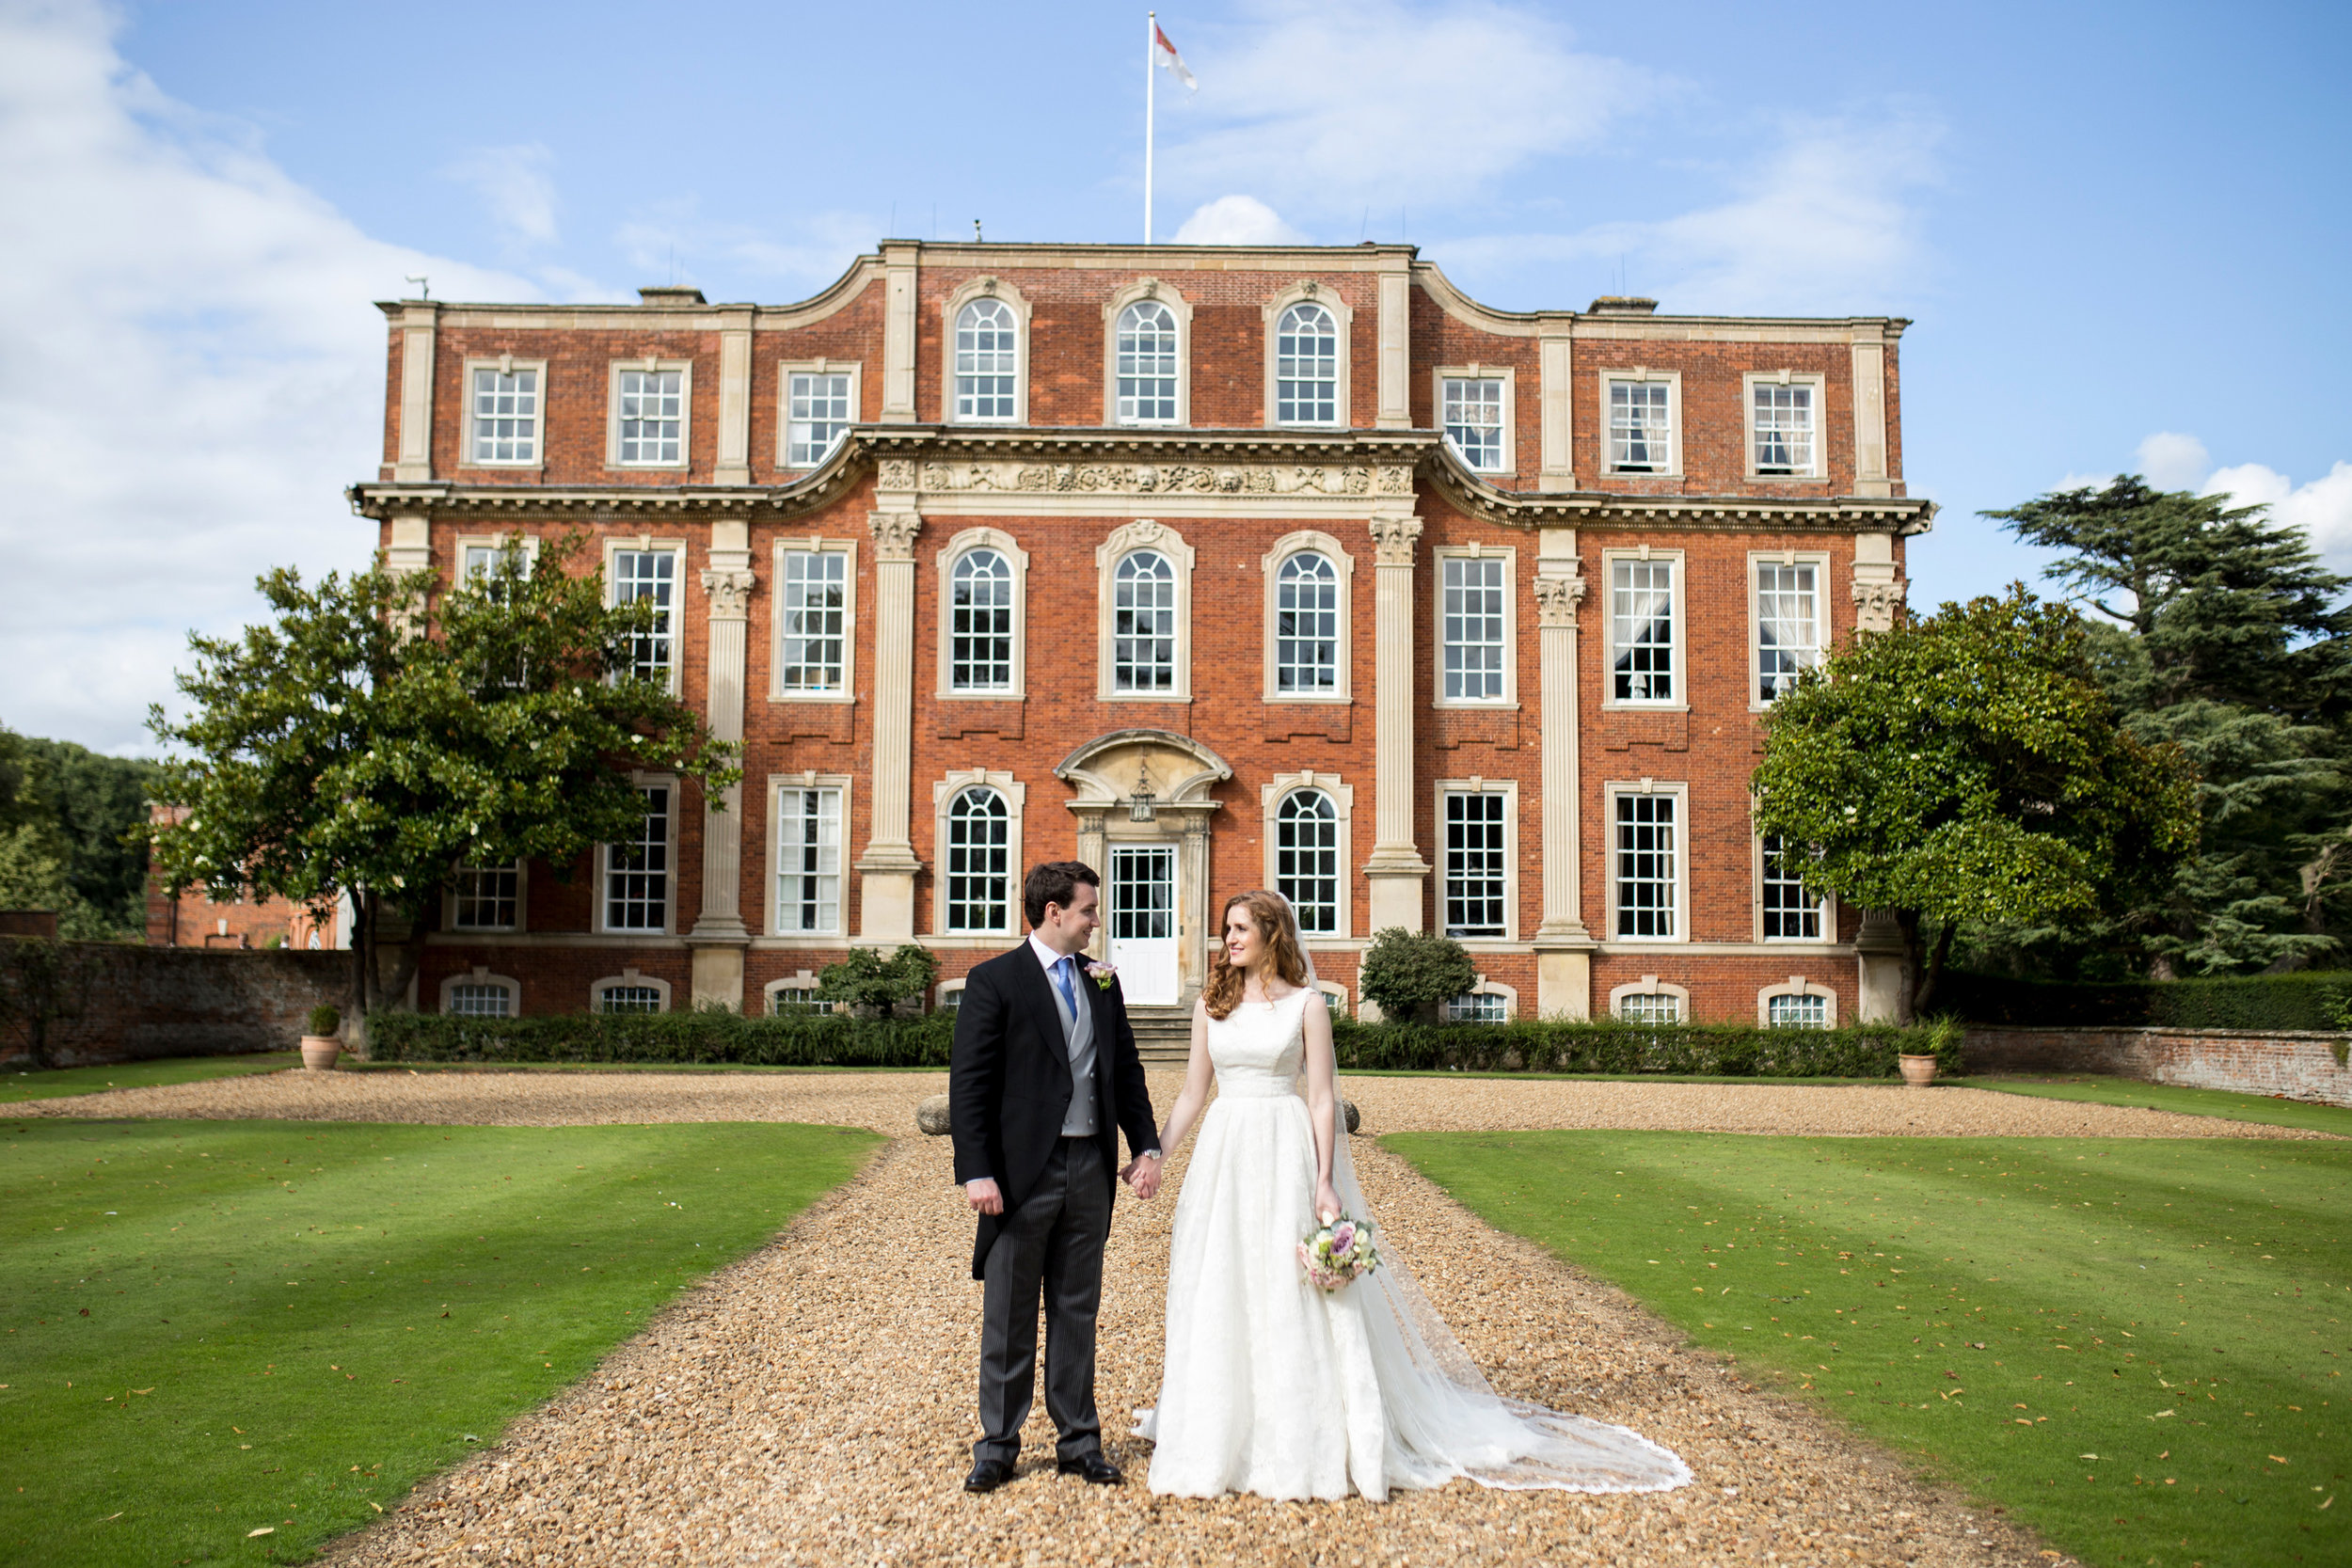 Wedding Venue, Chicheley Hall, Bride & Groom, Summer Wedding,